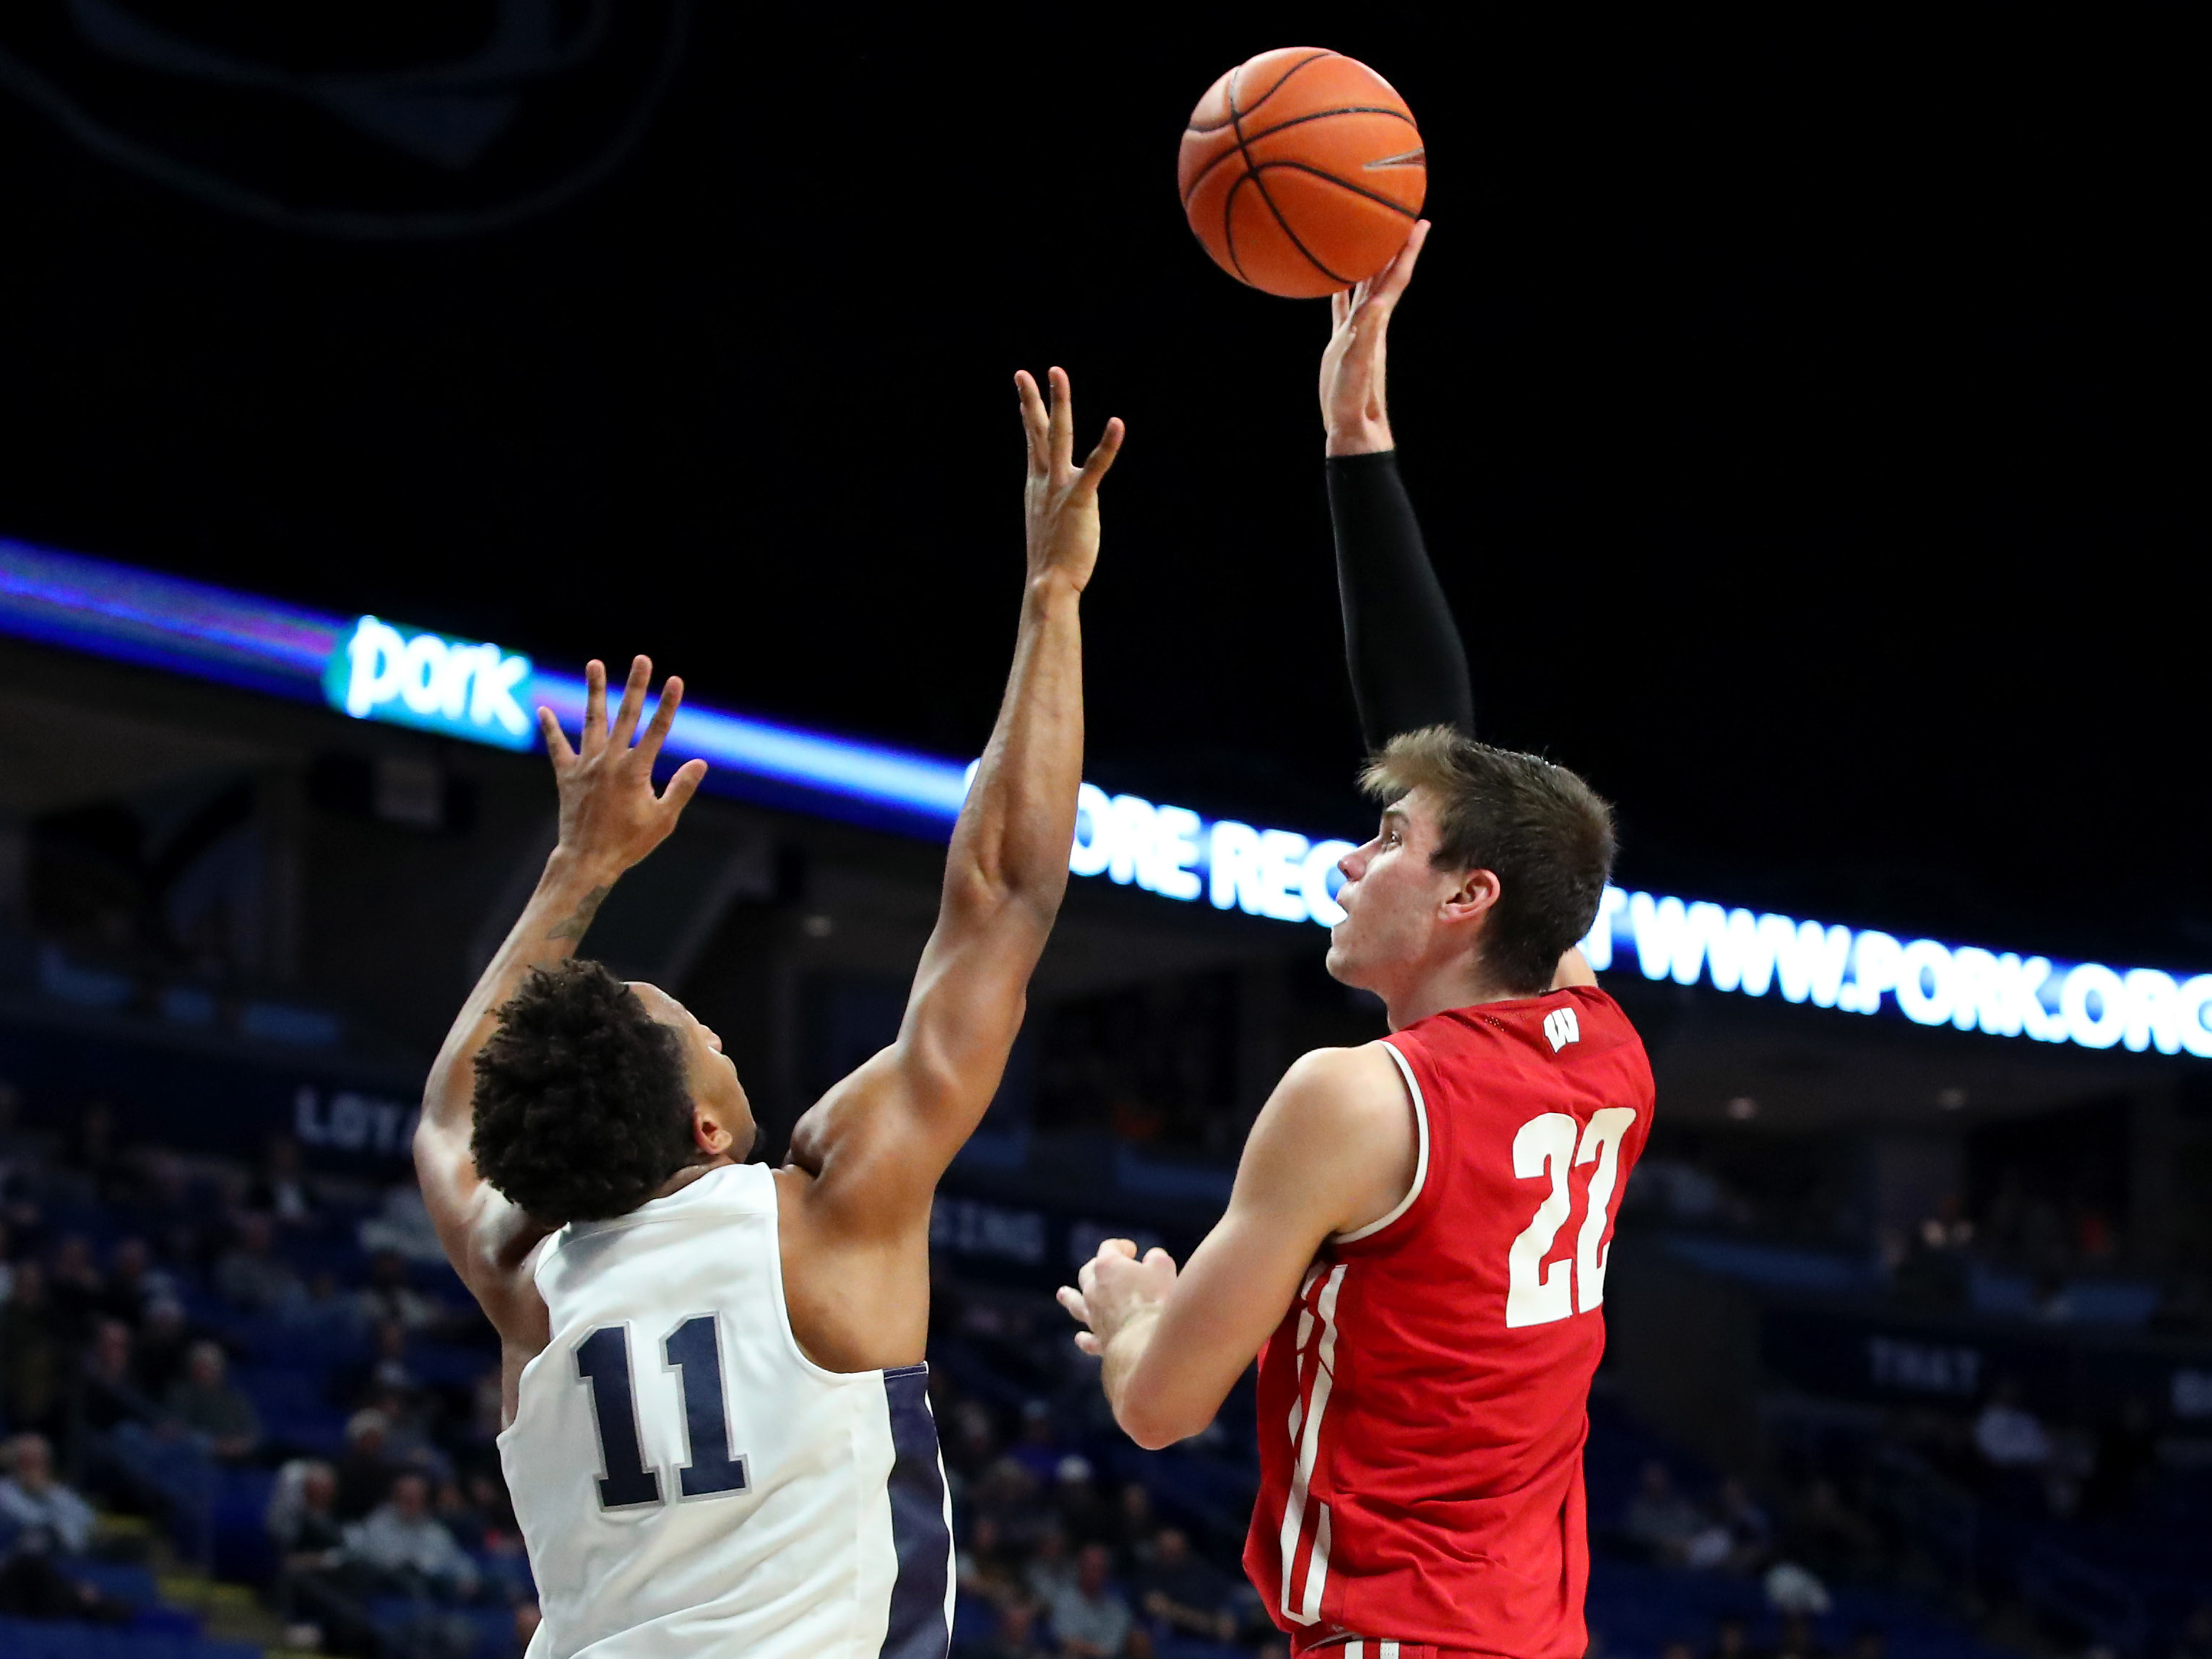 dbcab68f0302 Penn State at No. 19 Wisconsin Preview  Lions Seek First Win At Kohl Center